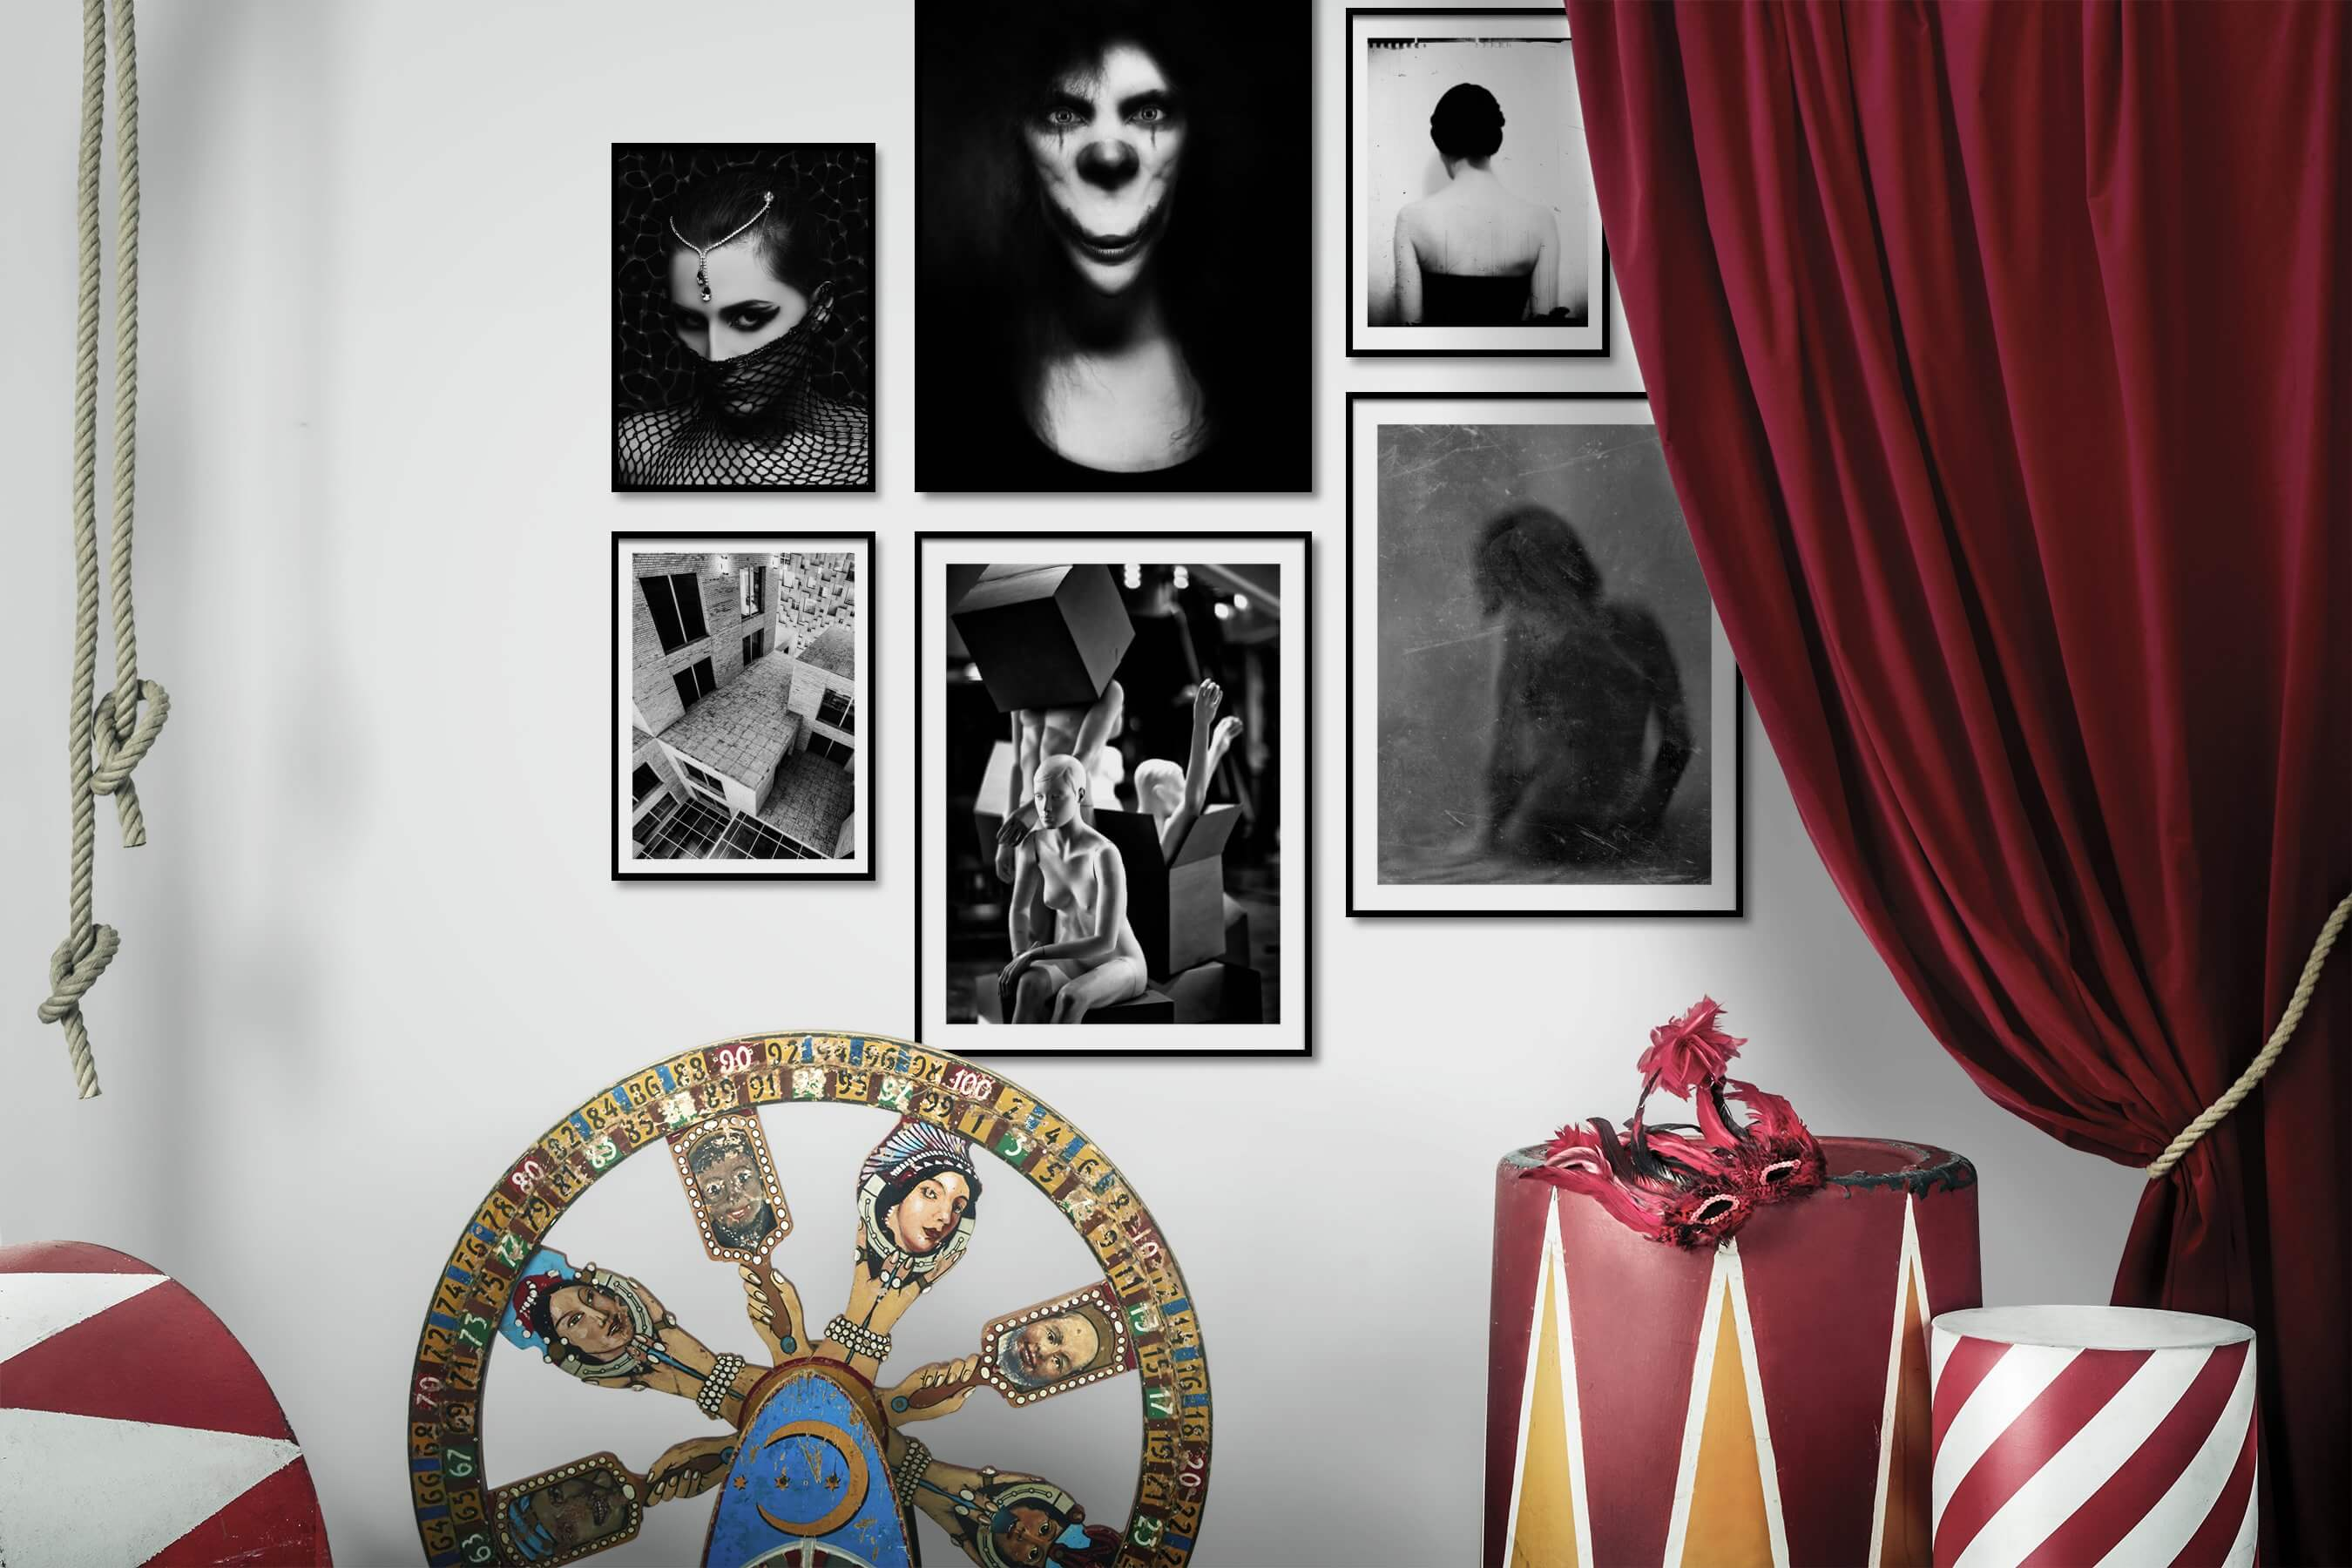 Gallery wall idea with six framed pictures arranged on a wall depicting Fashion & Beauty, Black & White, Artsy, Dark Tones, For the Minimalist, For the Maximalist, Bold, and Vintage